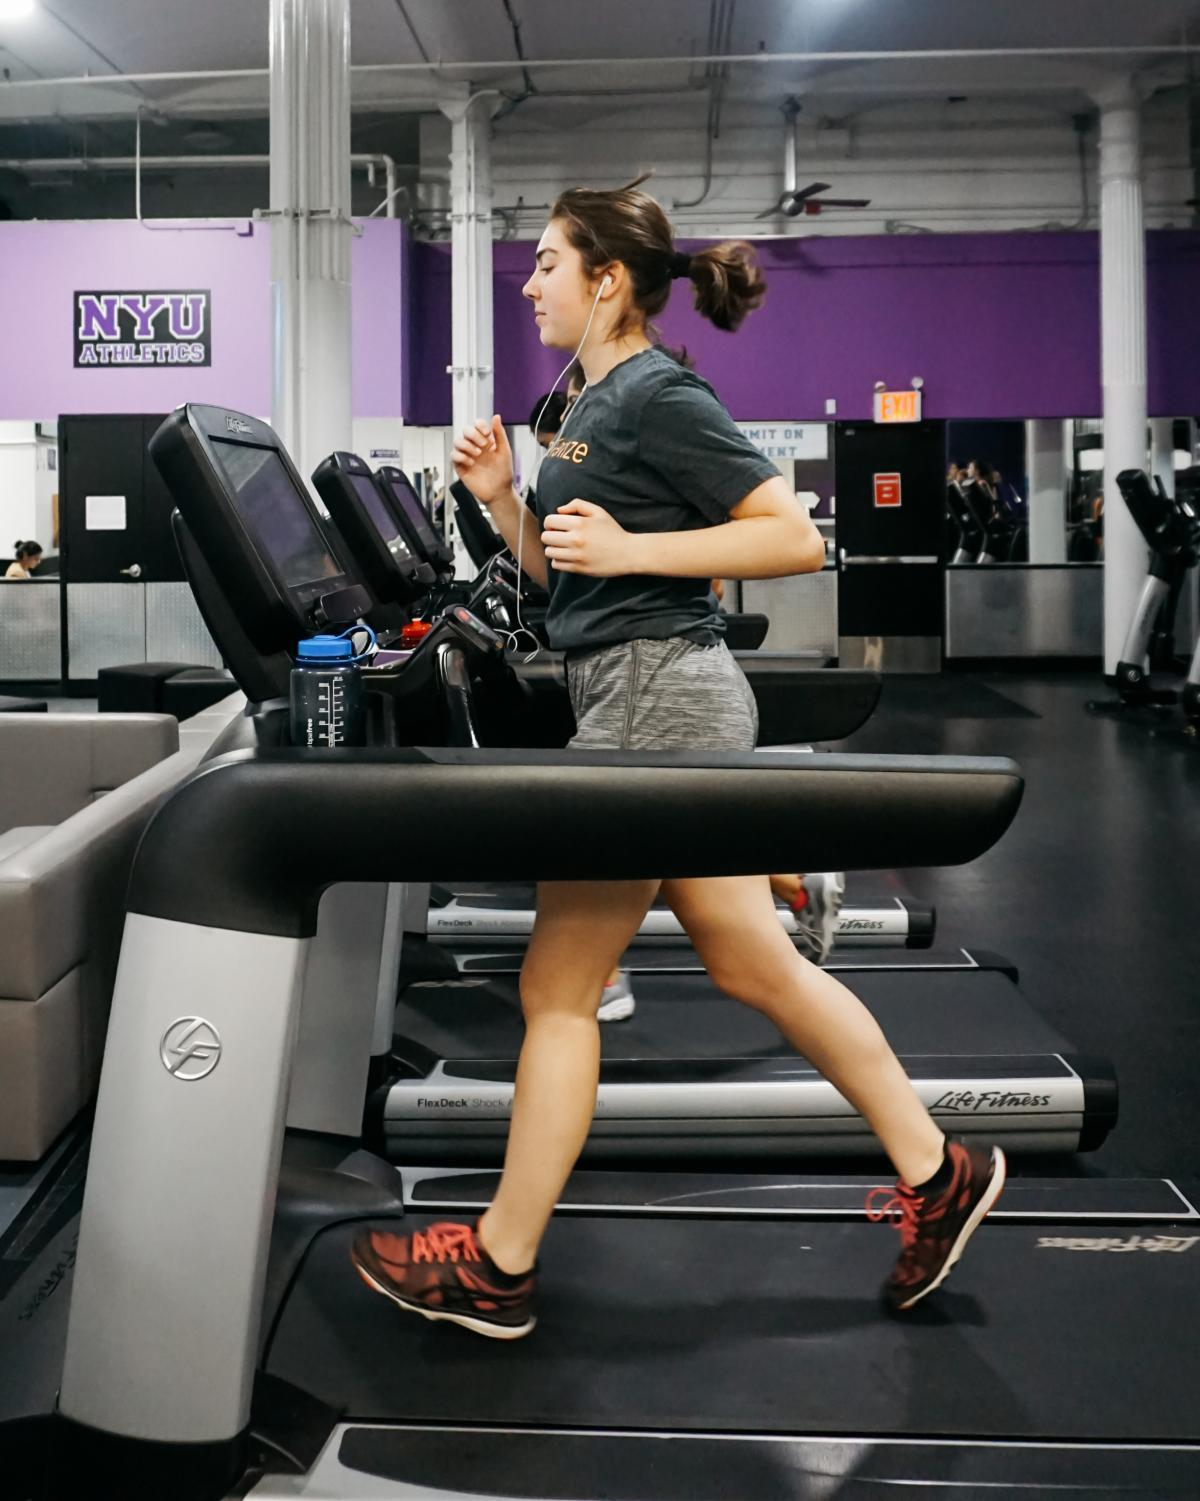 First-year Tisch student Genevieve Goodman gets in a workout at 404 Fitness after a day of classes.